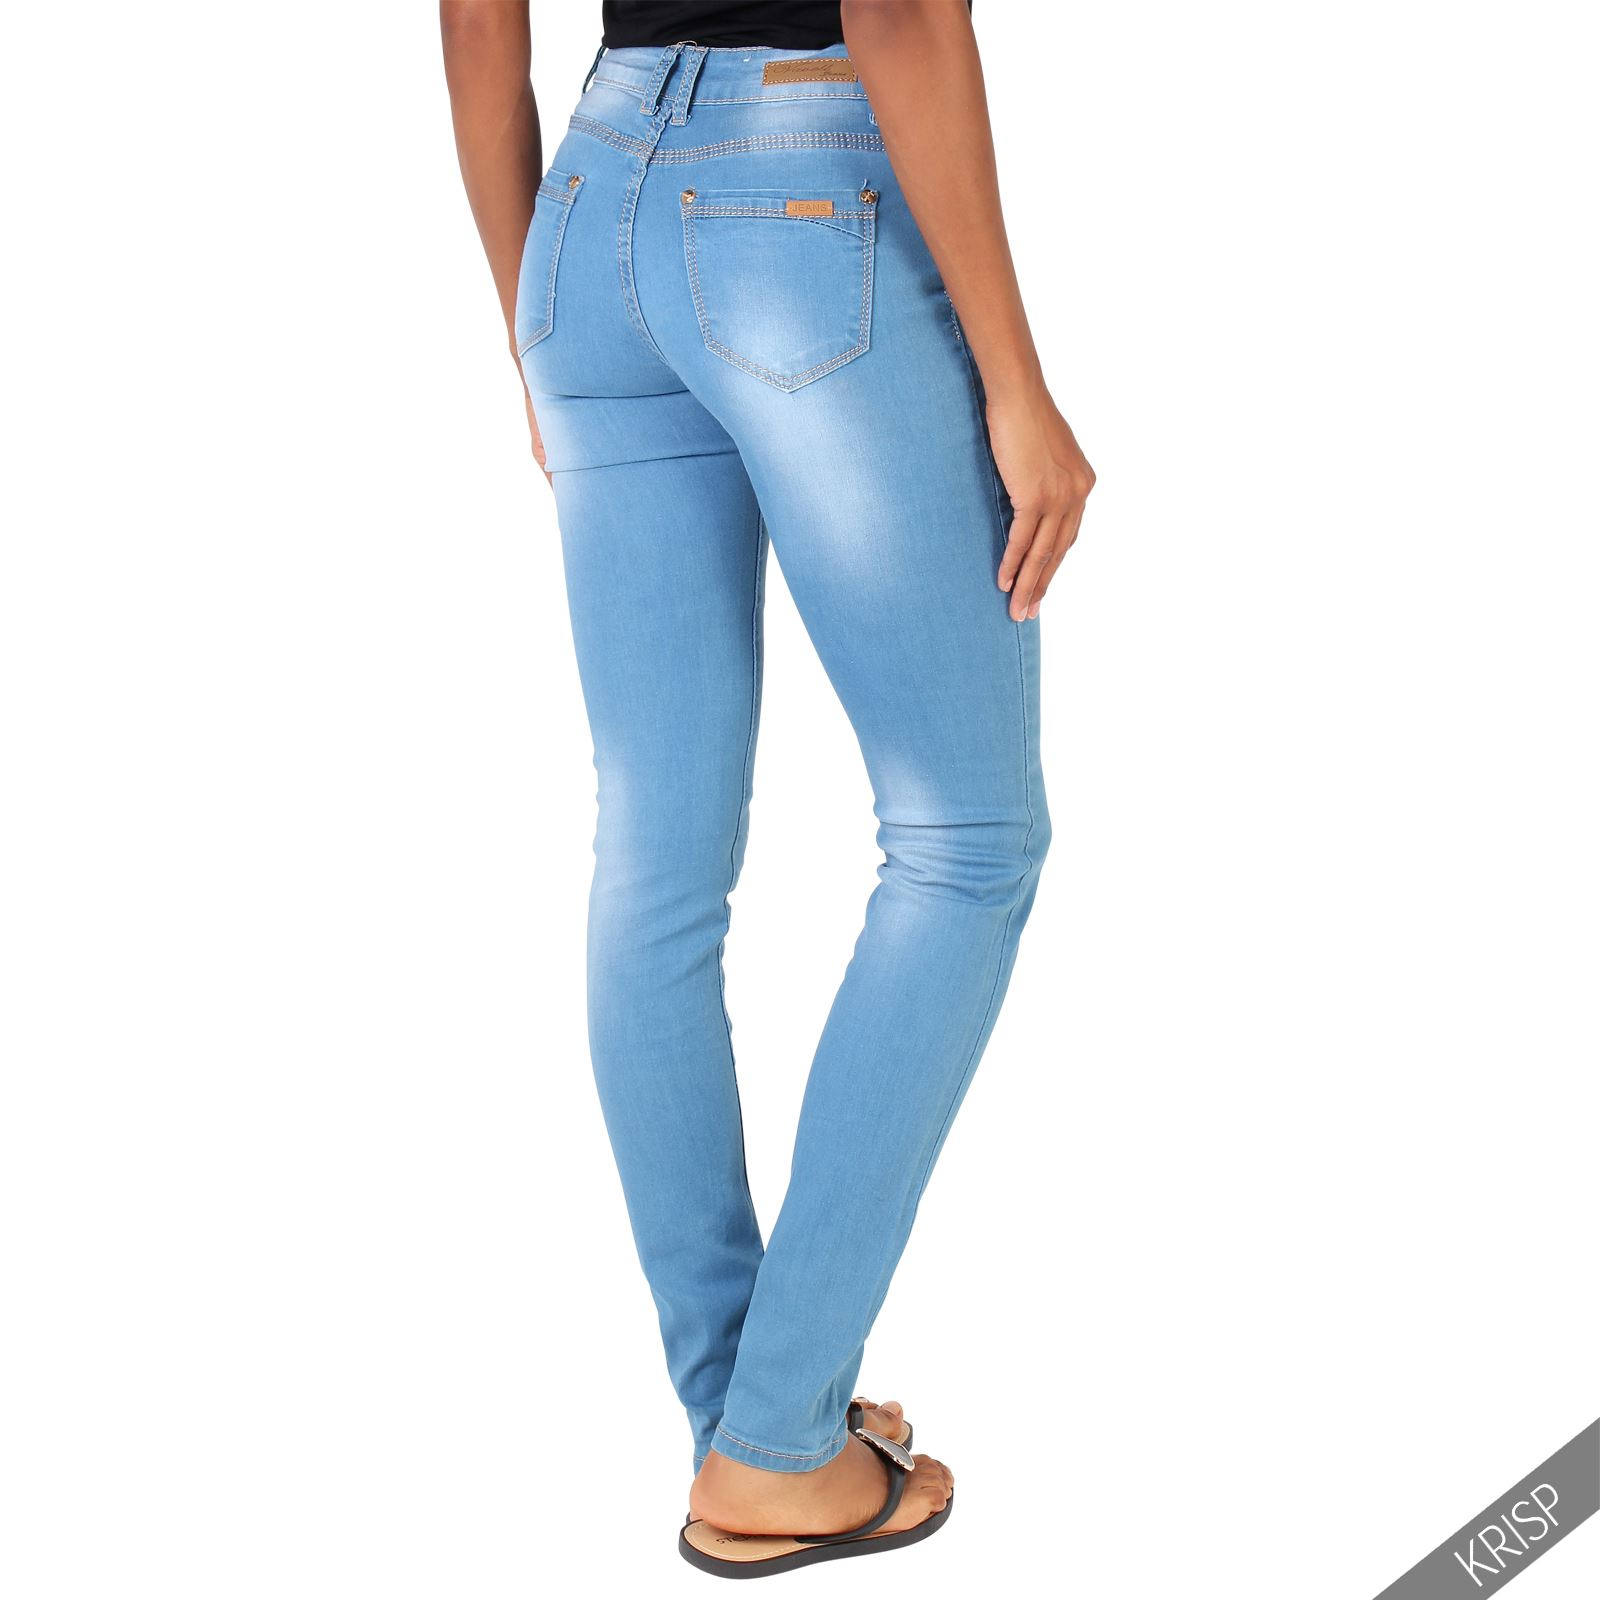 Don't buy a size that's too big assuming it will shrink to fit, because it likely won't. Free to Grow Hemming Depending on her height and favourite activity, pants may need to be hemmed.